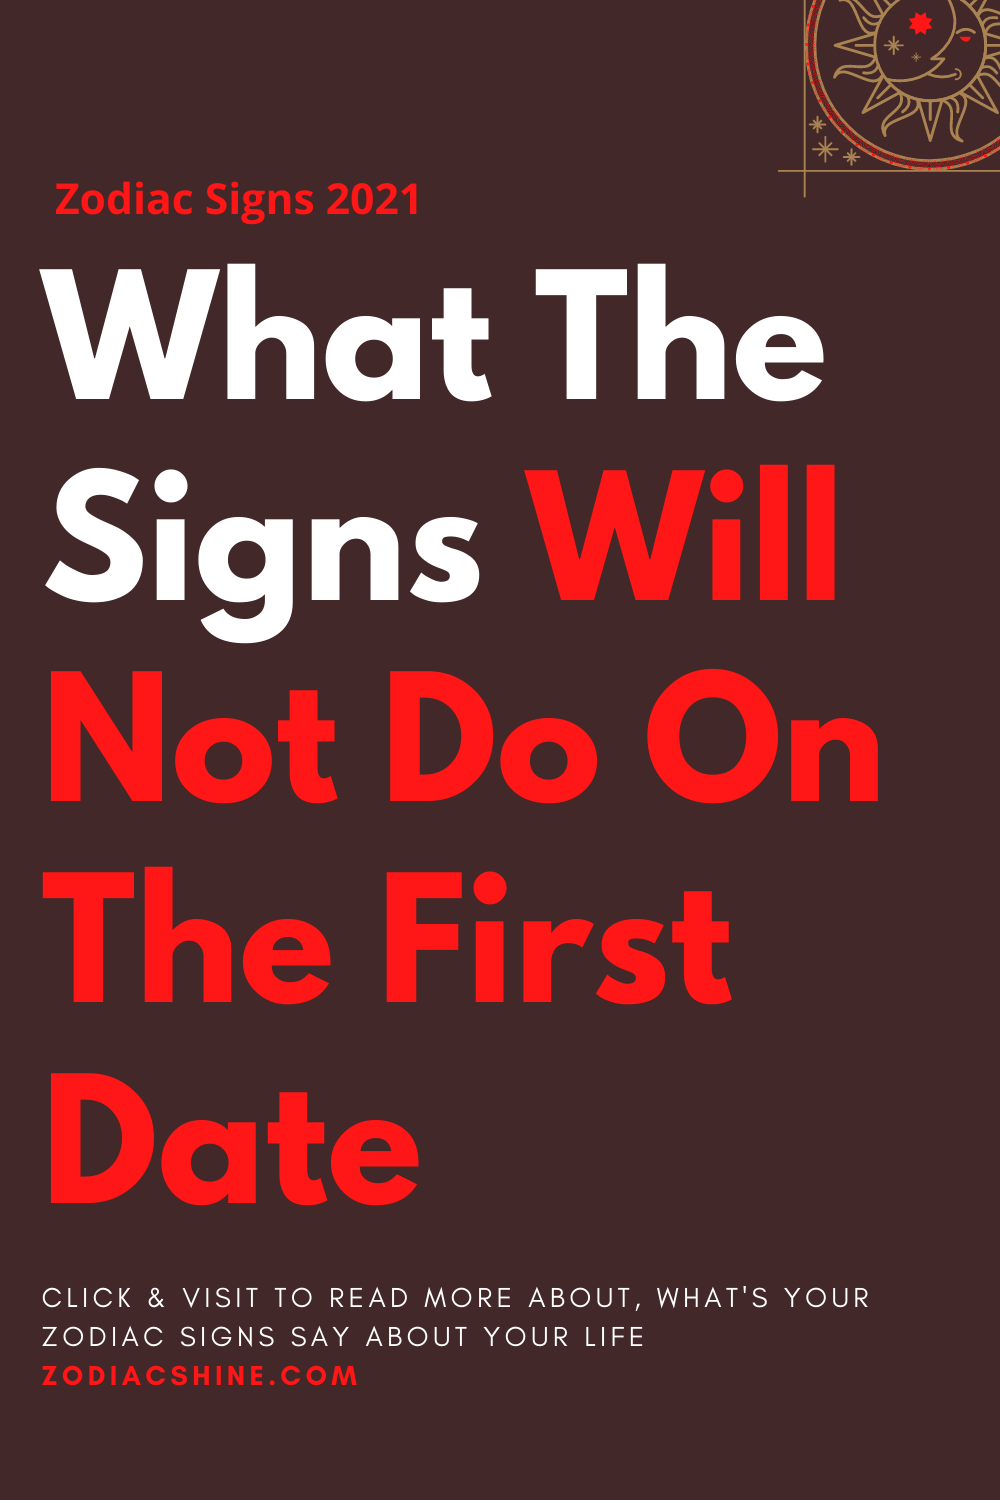 What The Signs Will Not Do On The First Date